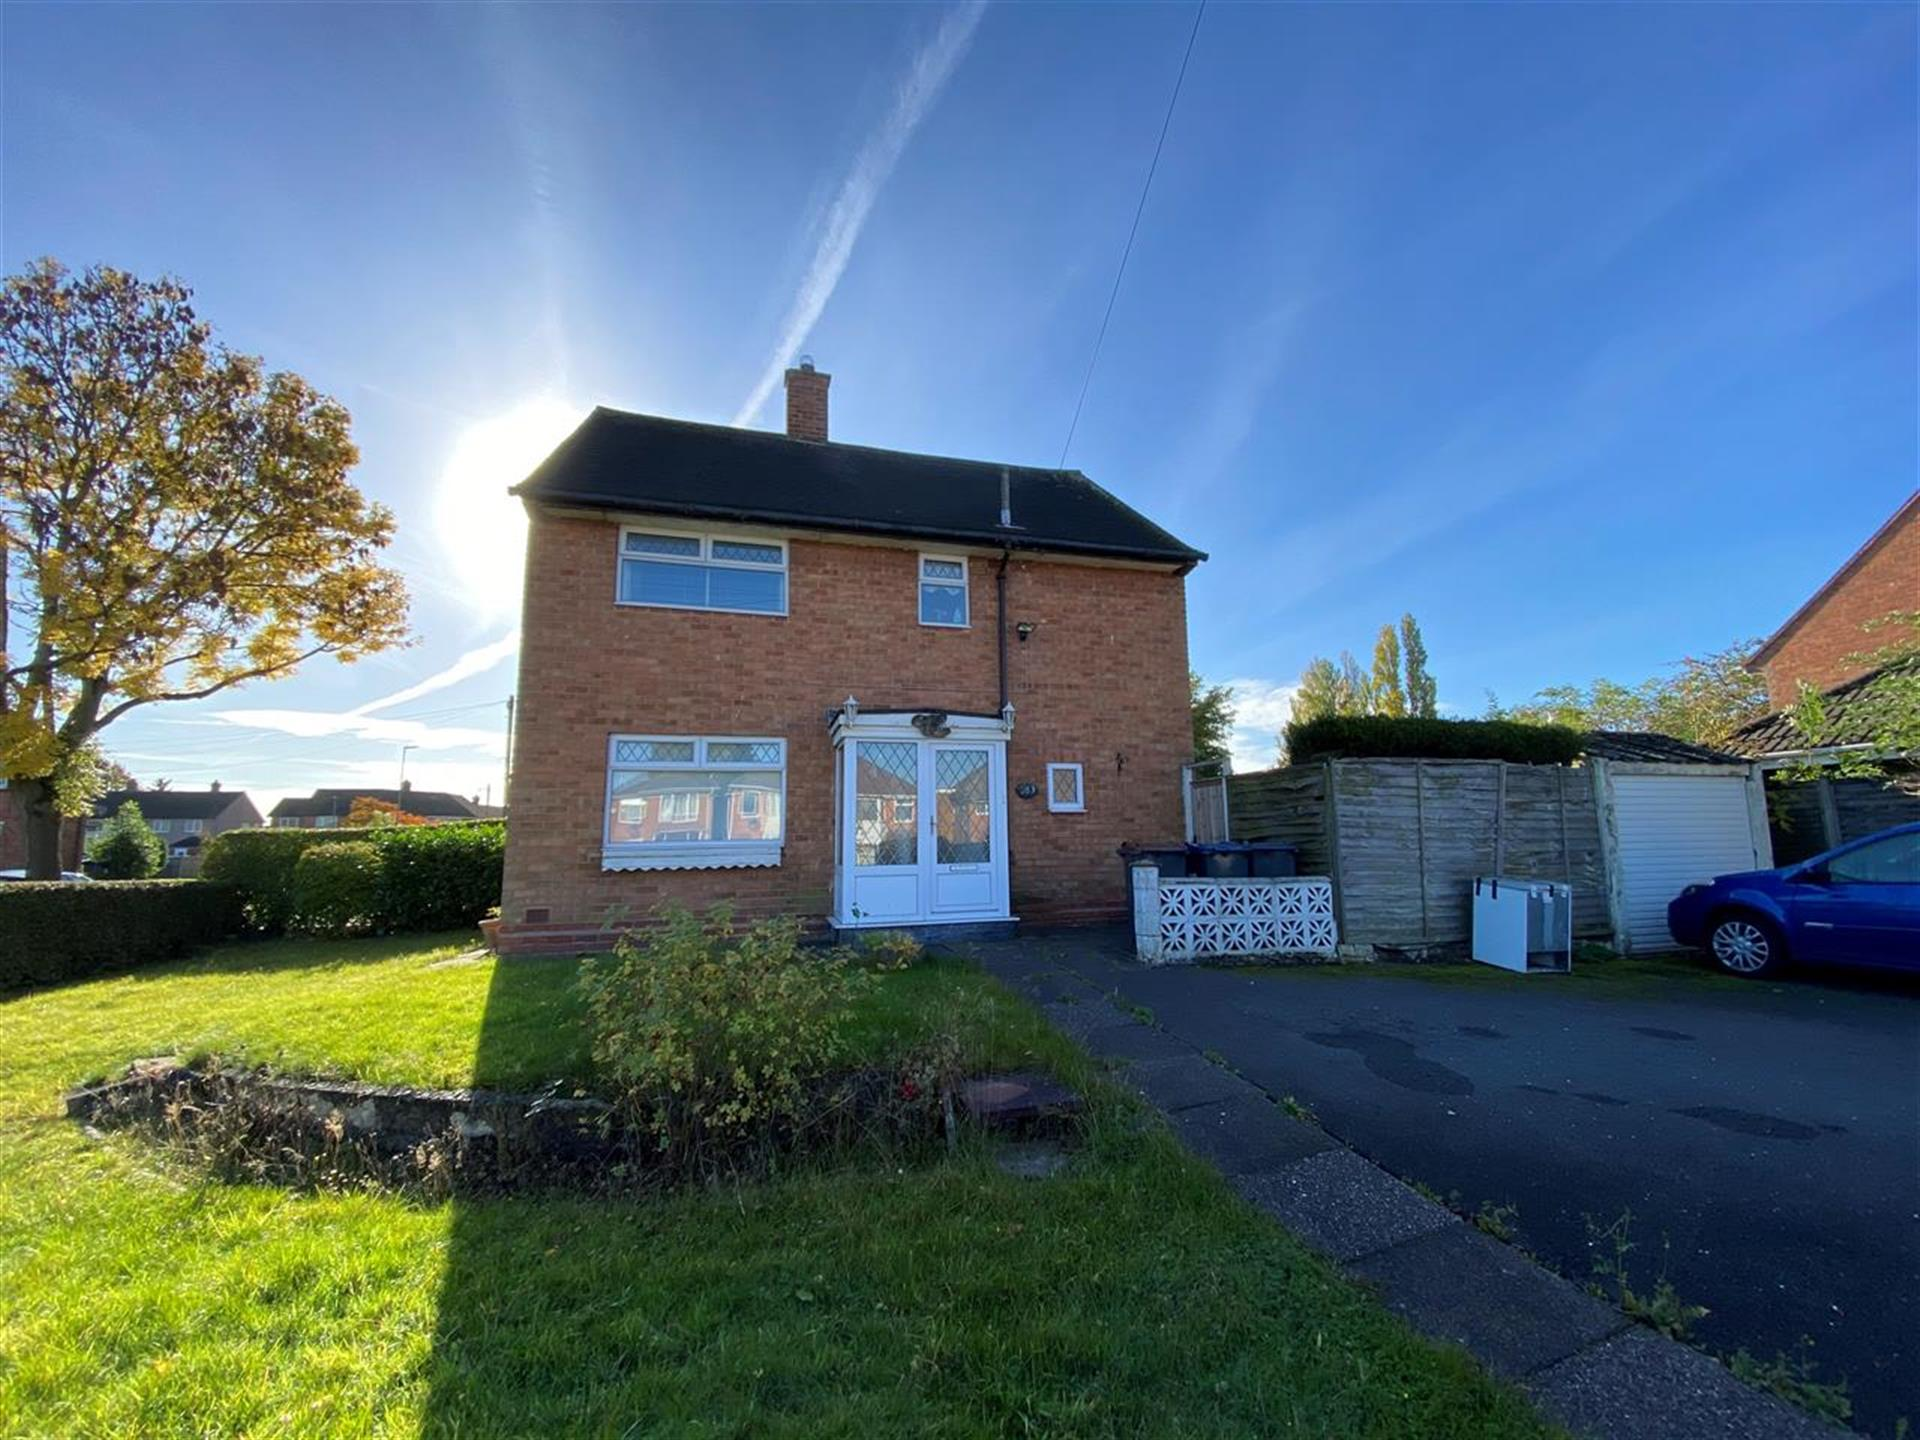 4 Bedroom End Terraced House For Sale - Main Picture